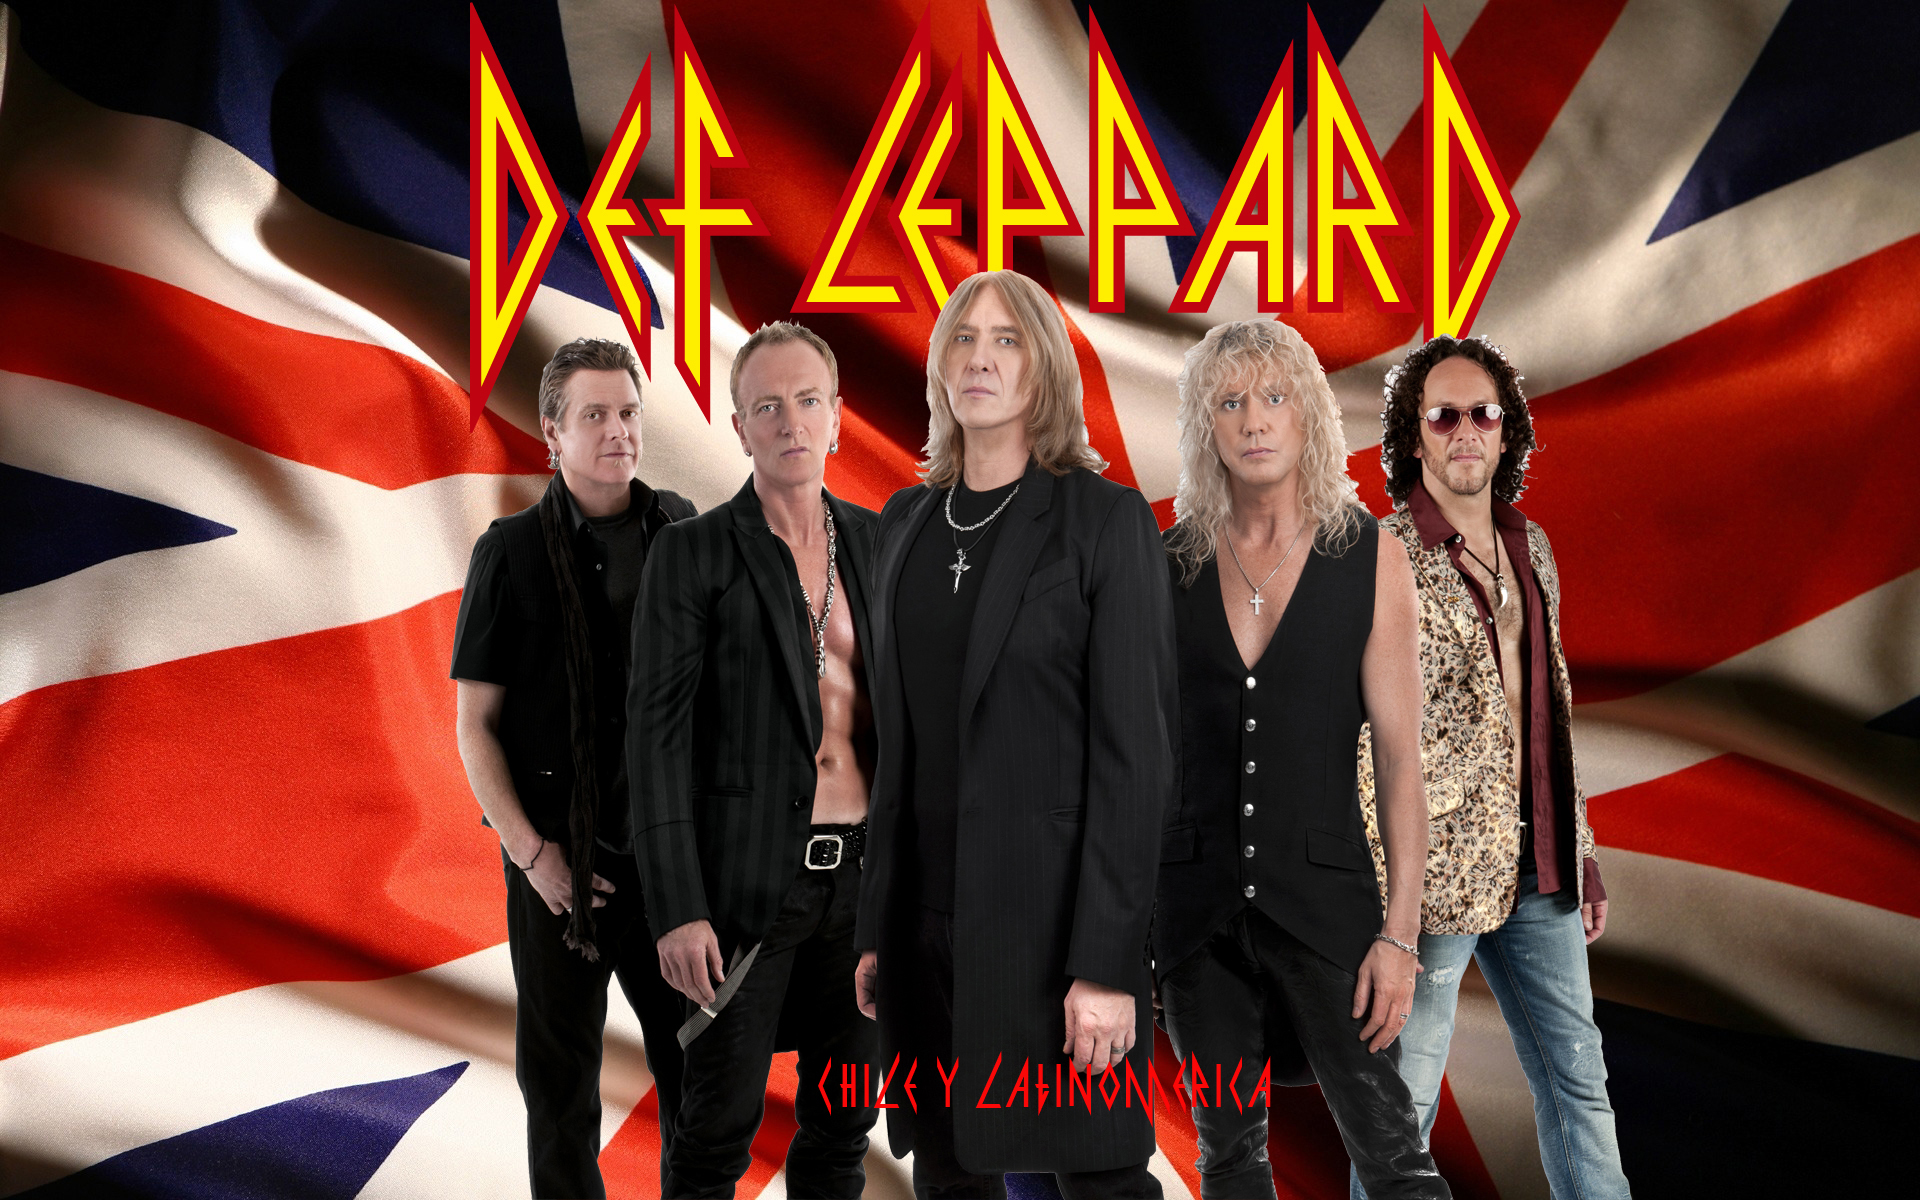 Love to Def Leppard